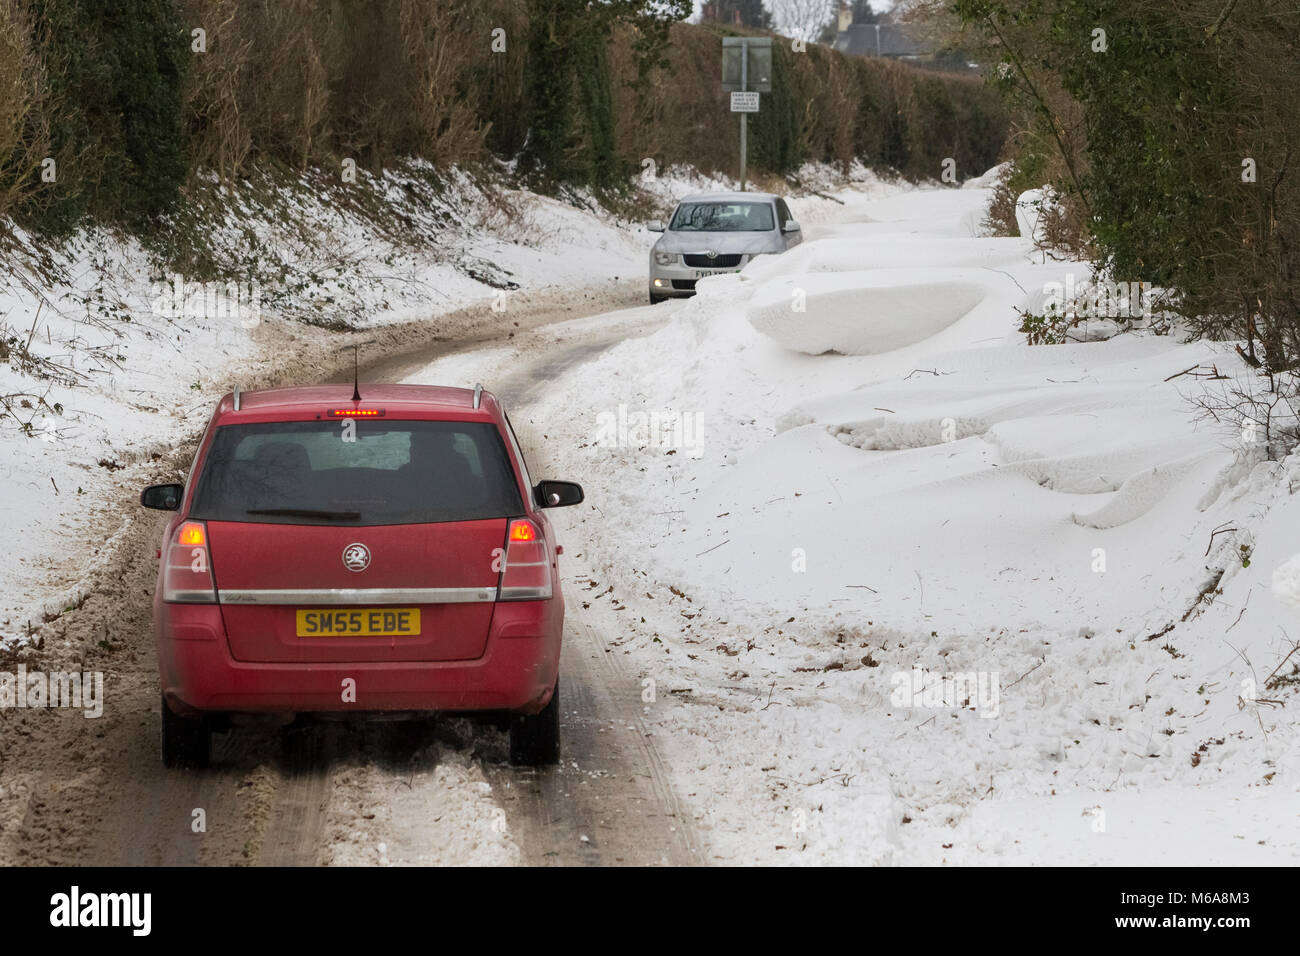 Uttoxeter, Staffordshire, UK. 02nd Mar, 2018. UK Weather: cars stranded in huge snow drifts near Uttoxeter, due - Stock Image